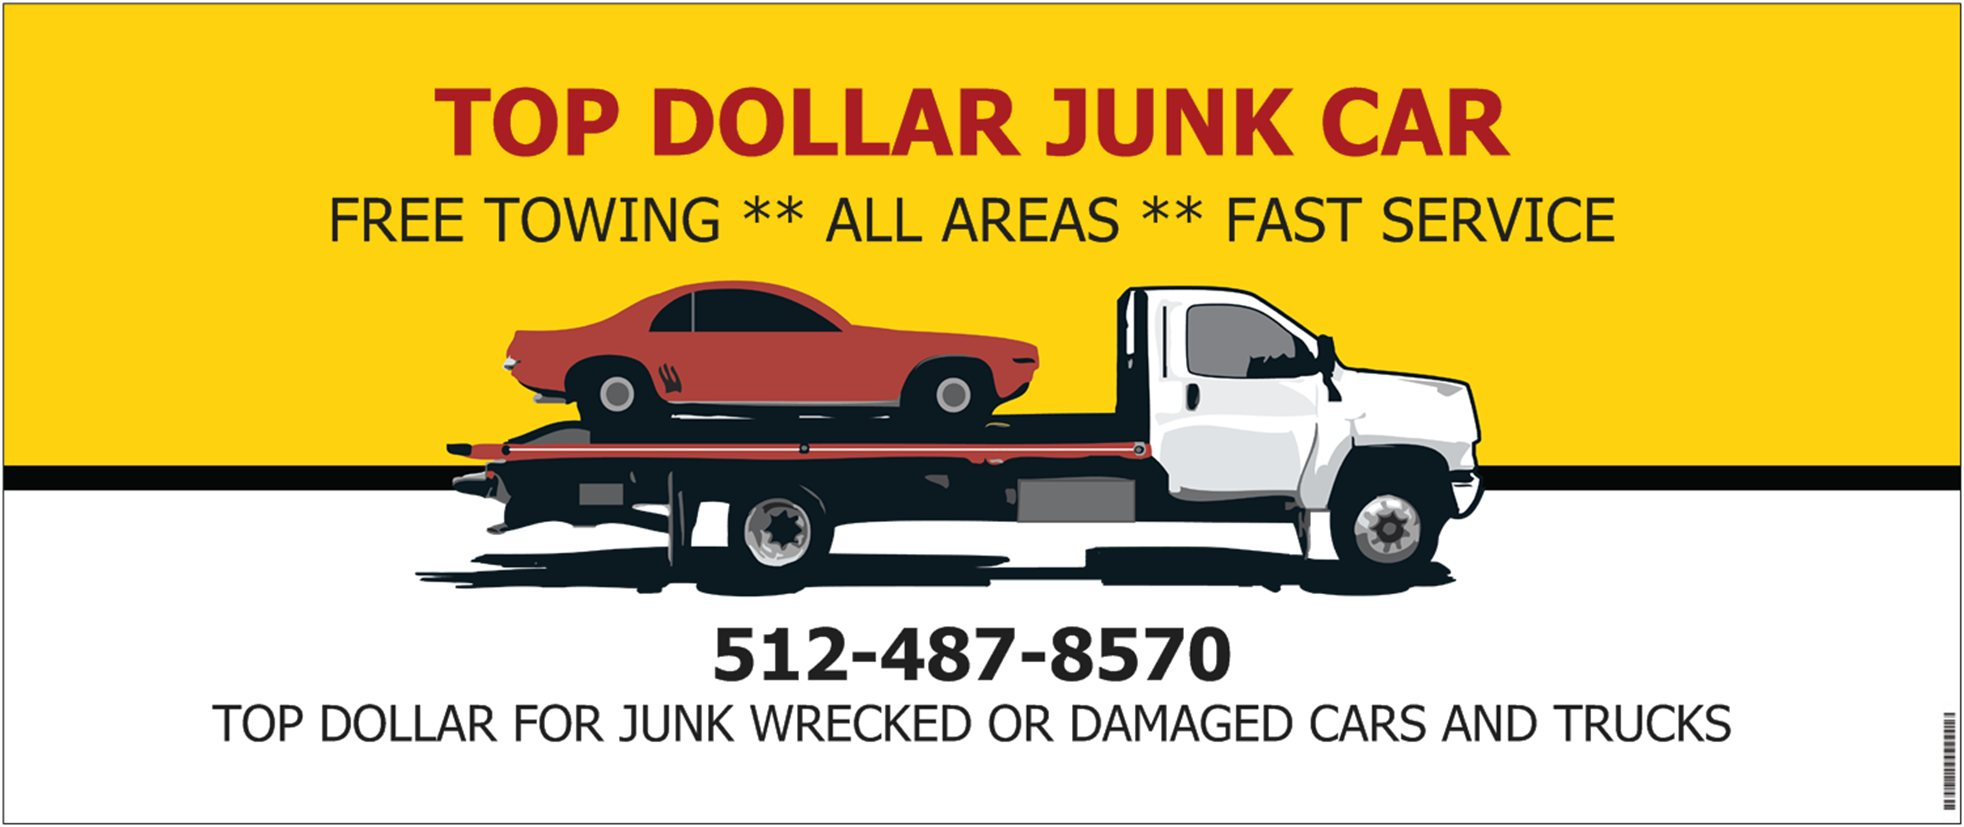 Top Dollar For Junk Cars >> Junk Car Austin And All Surrounding Areas 512 487 8570